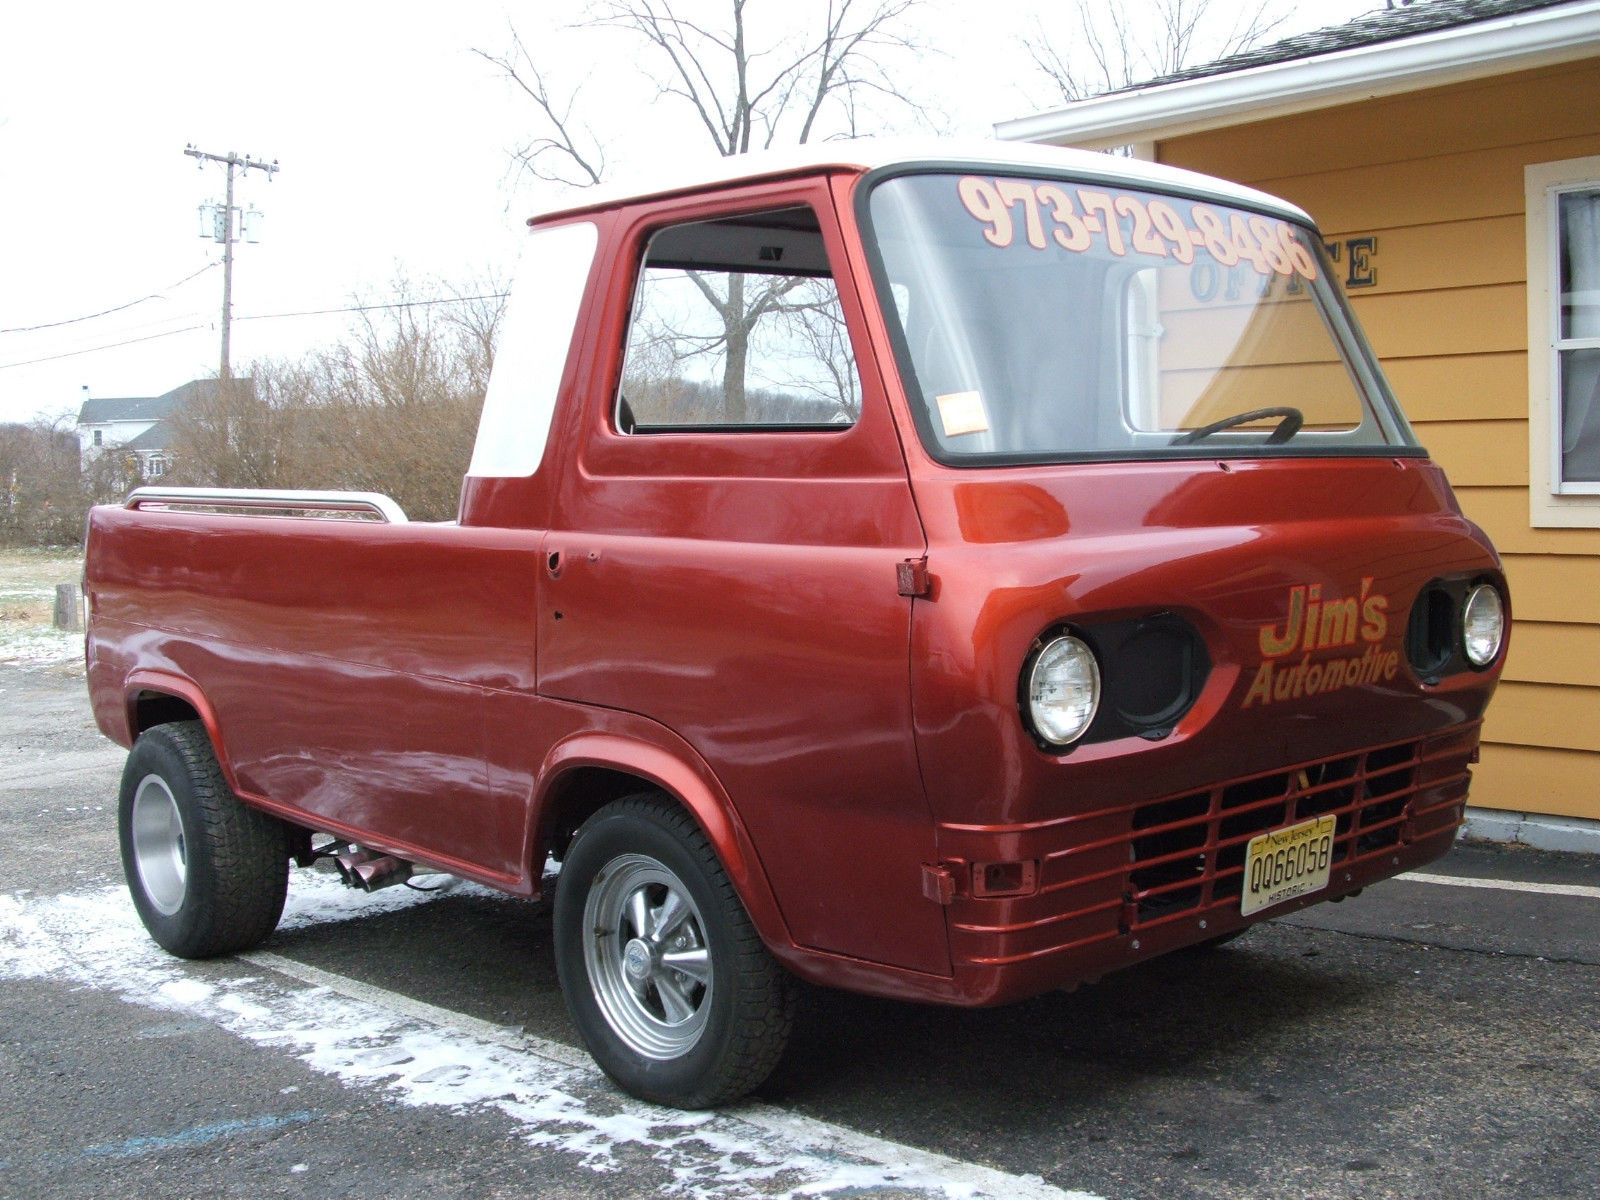 Dodge A100 Pickup Truck For Sale >> Ford Econoline Pickup For Sale On Craigslist | Autos Post